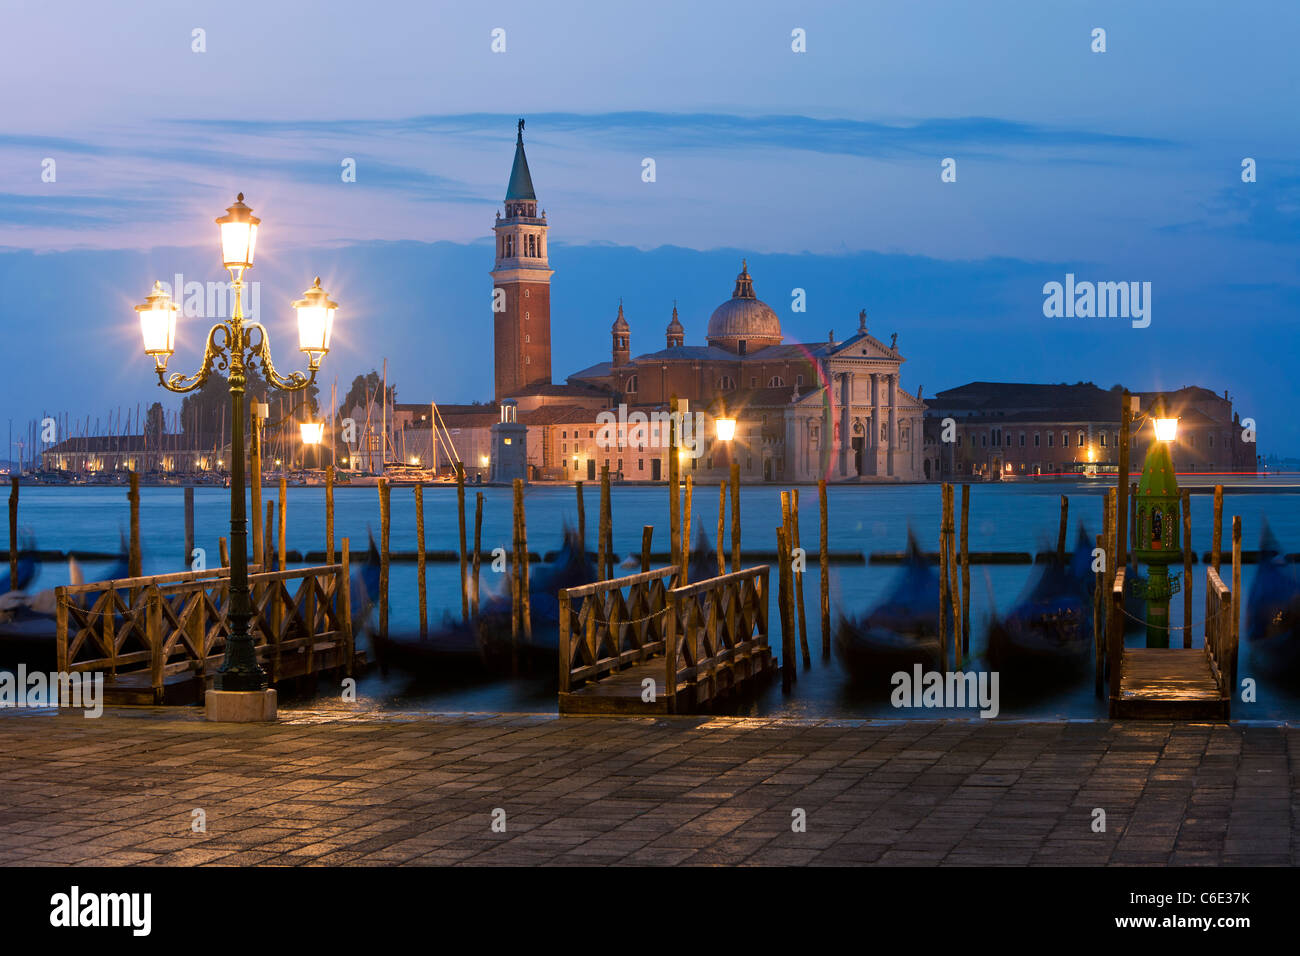 Quay at St Mark's Square with Gondolas and the view to San Giorgio Maggiore Island, Venice, Italy, Europe - Stock Image